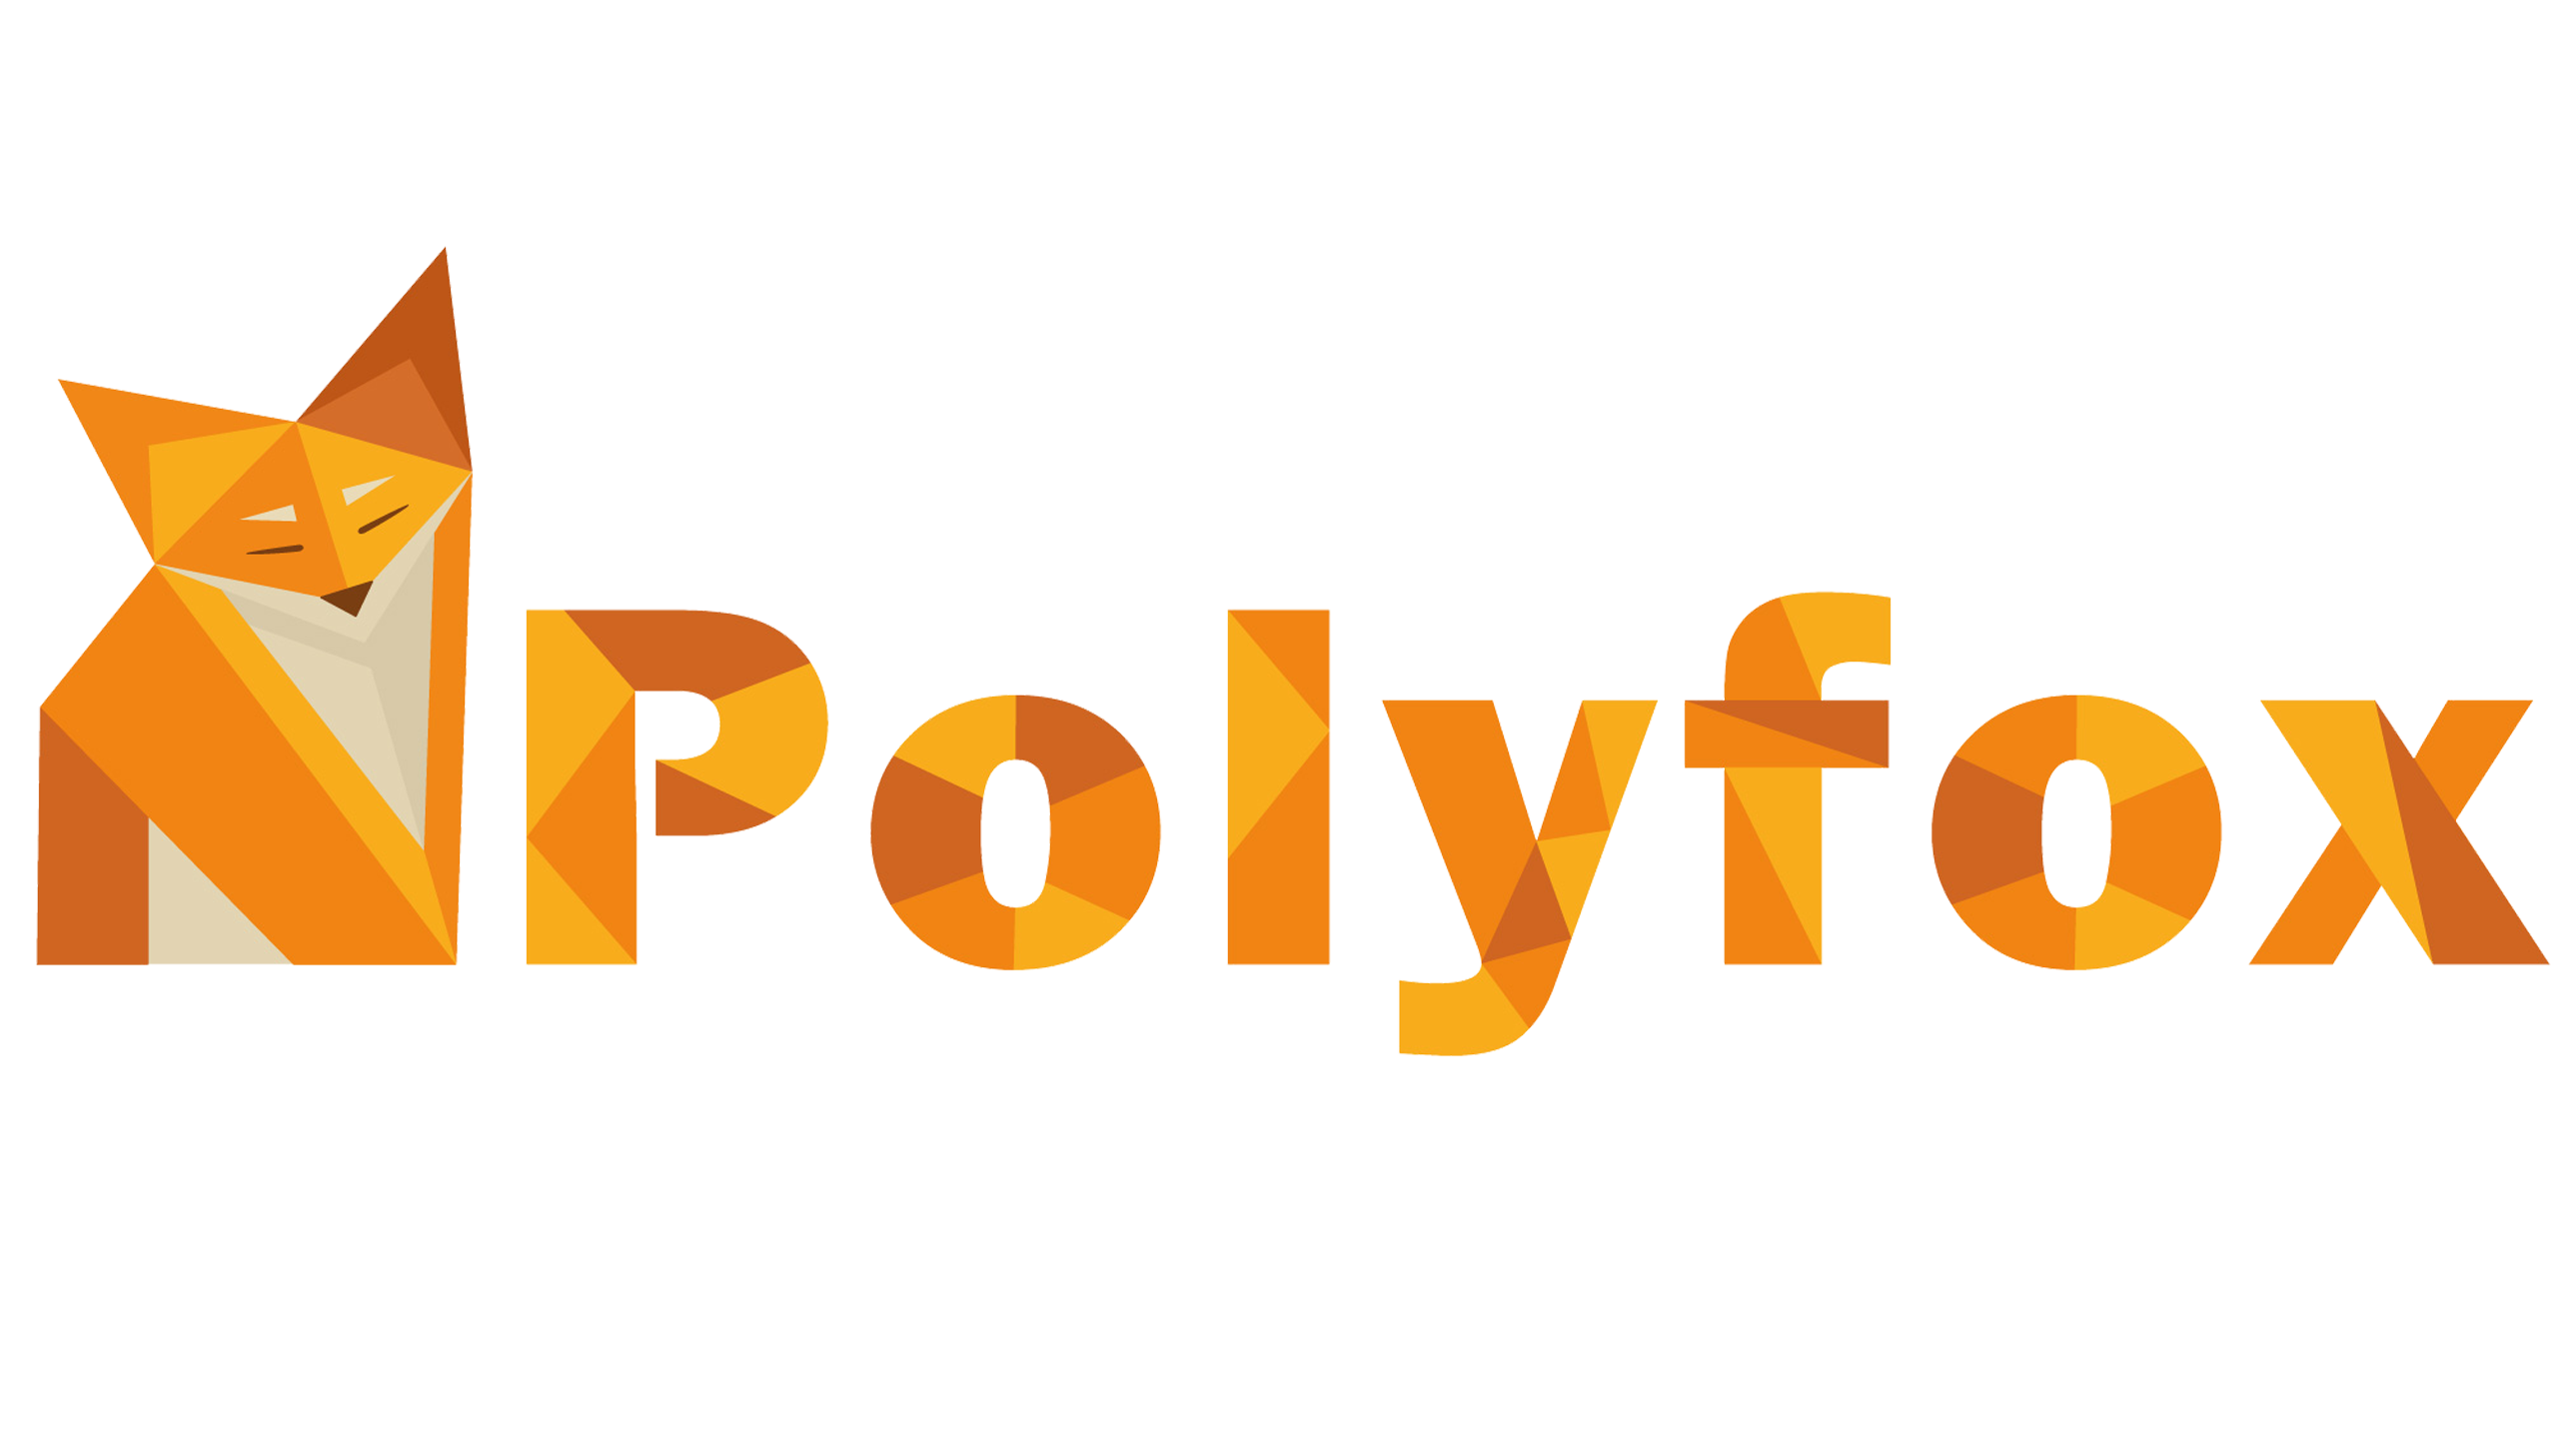 polyfox_logo_transparency